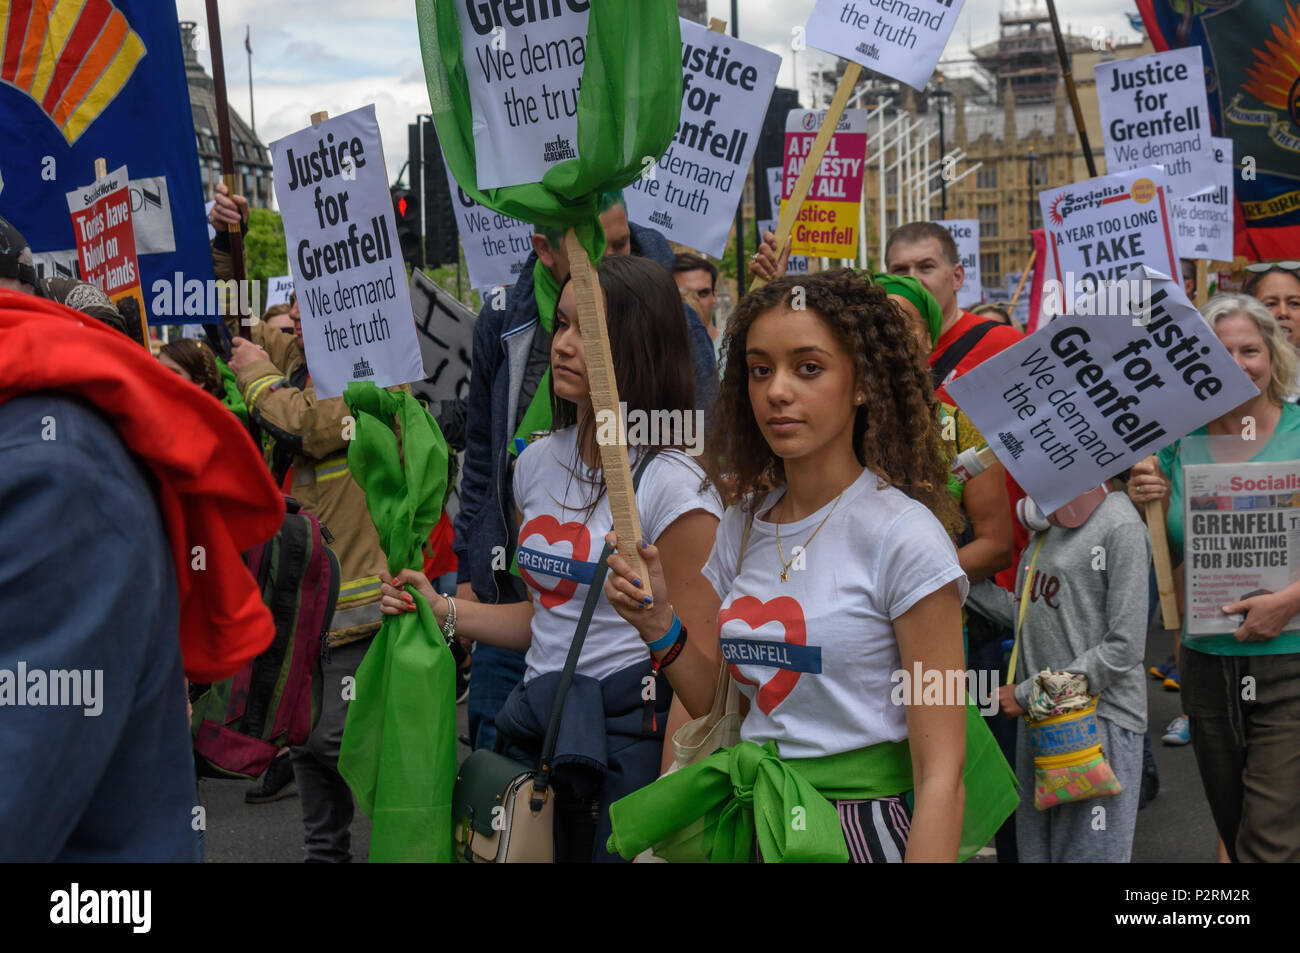 London, UK. 16th June 2018. A large crowd marches from Downing St to the Home Office in solidarity with the 72 killed and the survivors of the Grenfell fire a year ago at a protest organised by Justice4Grenfell and the FBU (Fire Brigades Union.) After some speeches they marched to the Home Office for a brief protest before returning to Downing St for more speeches. mmo Credit: Peter Marshall/Alamy Live News - Stock Image